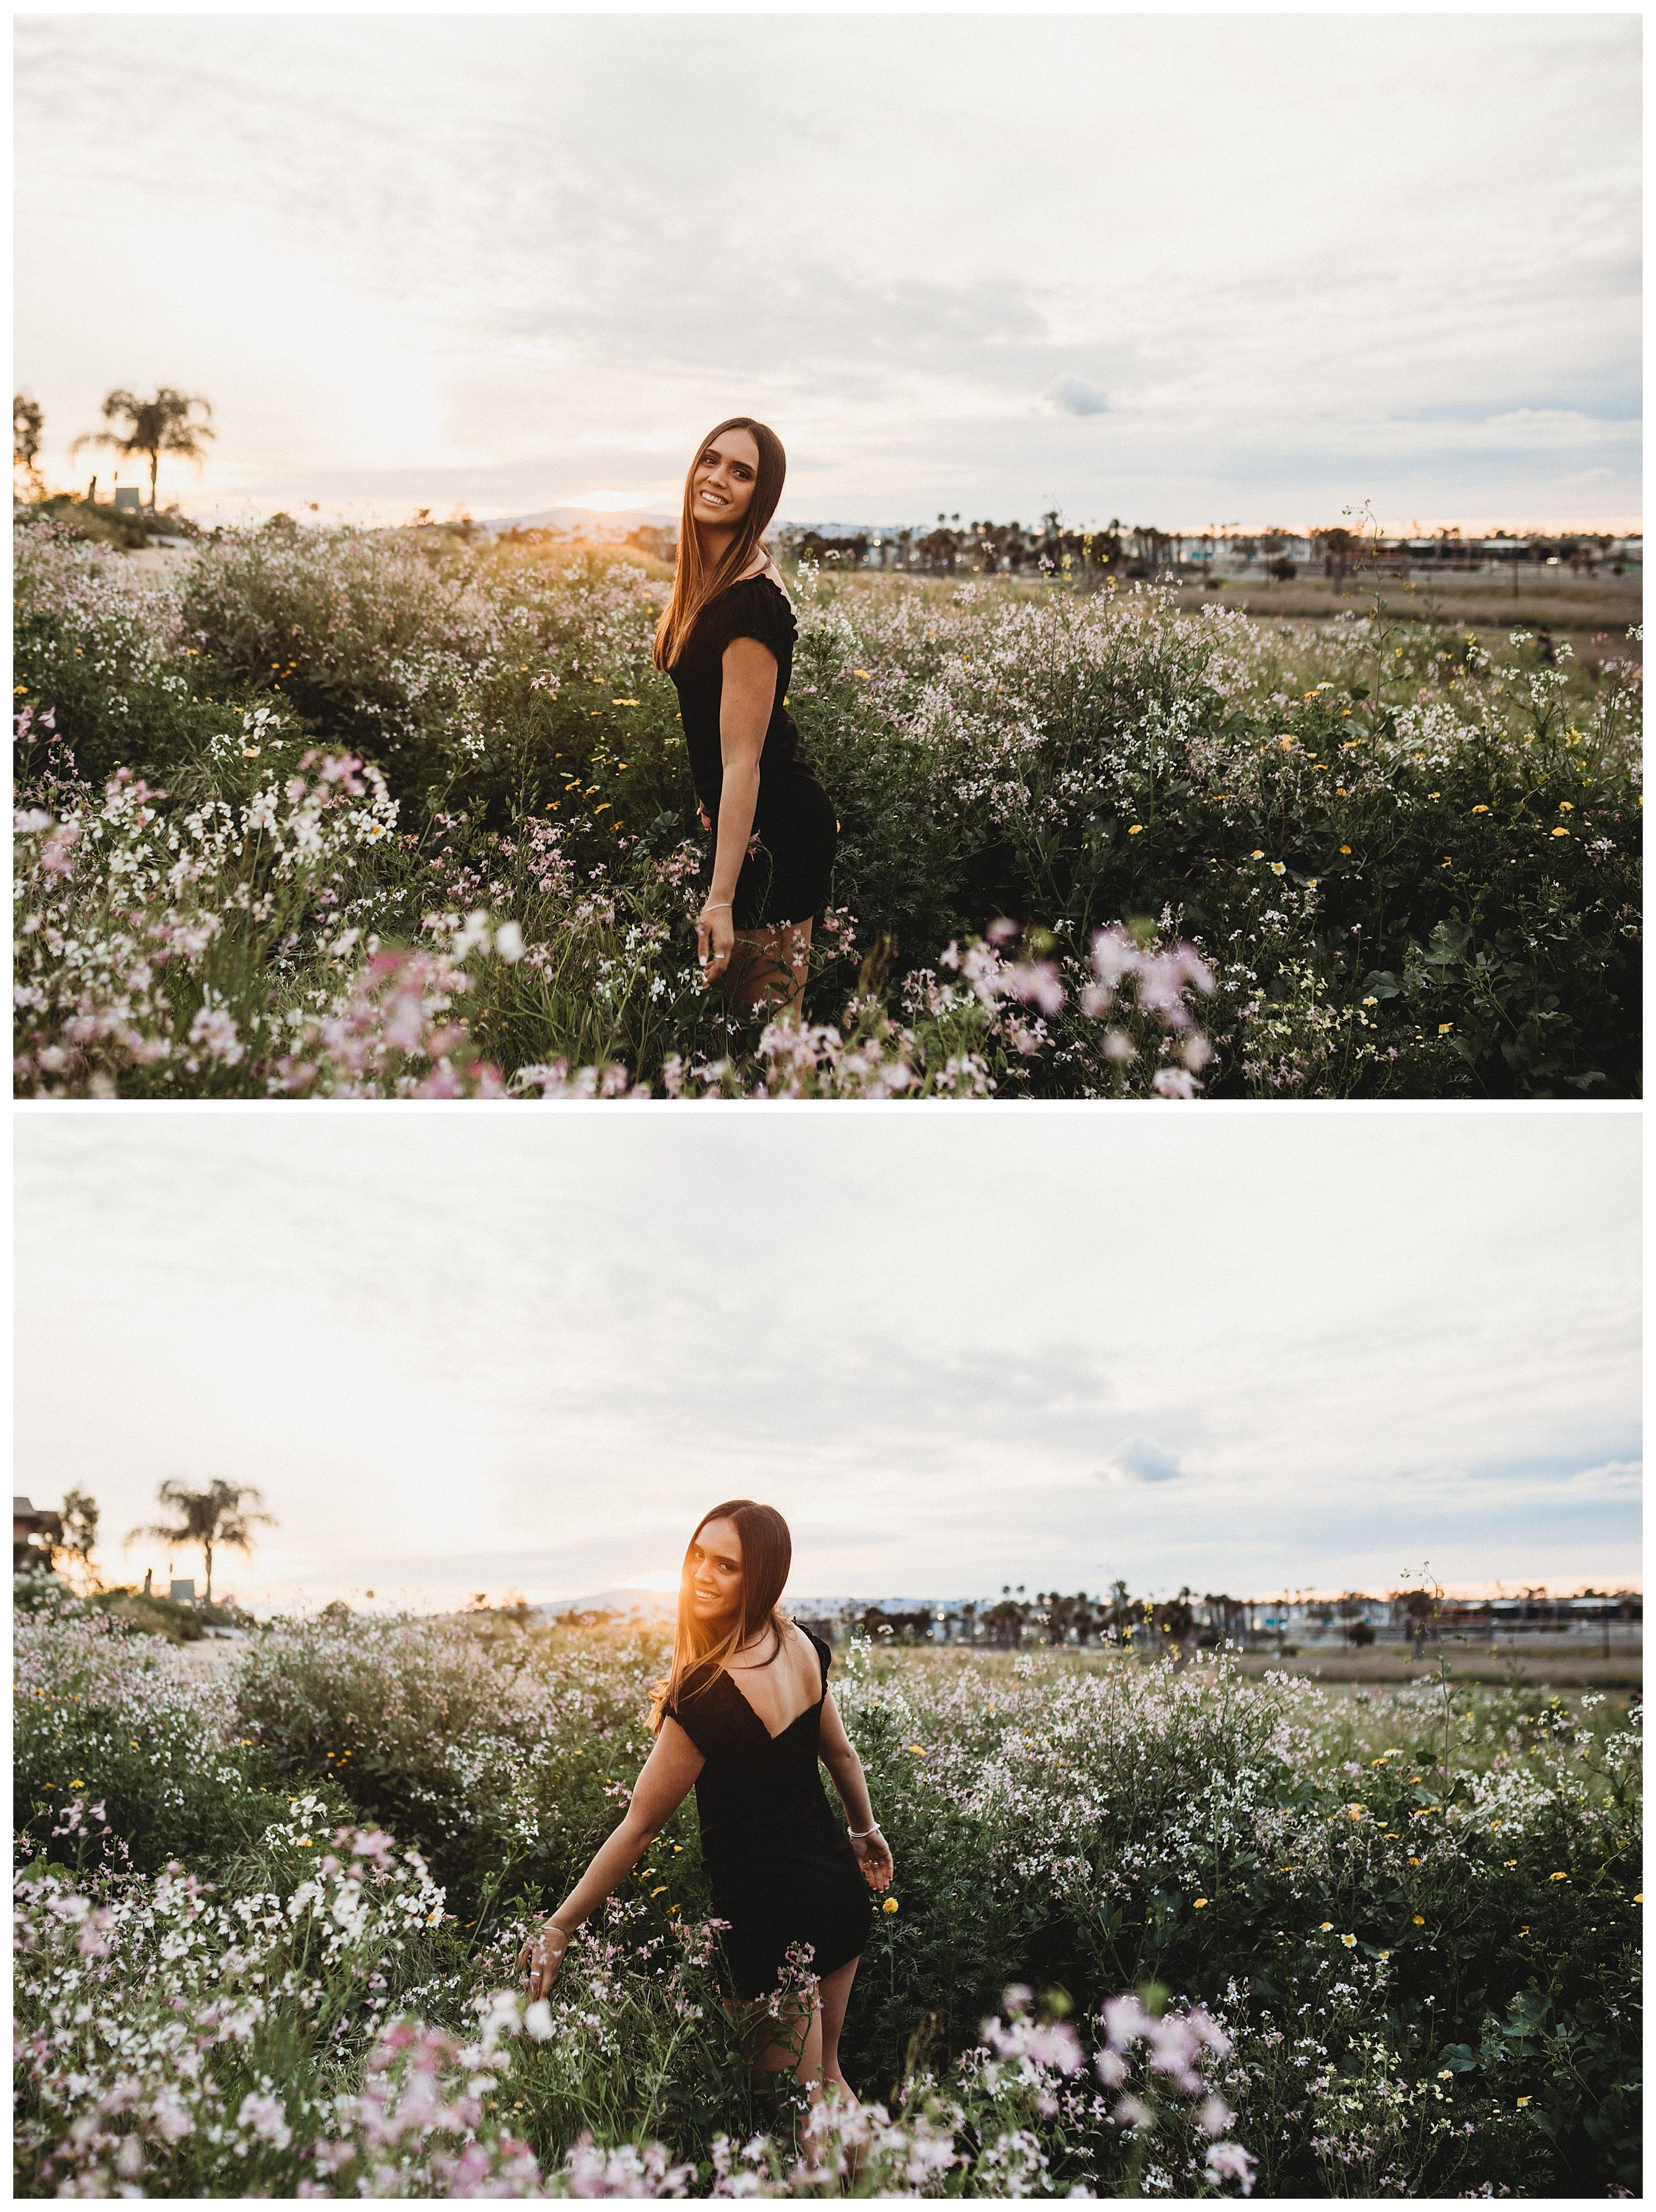 girl standing in flower field at sunset